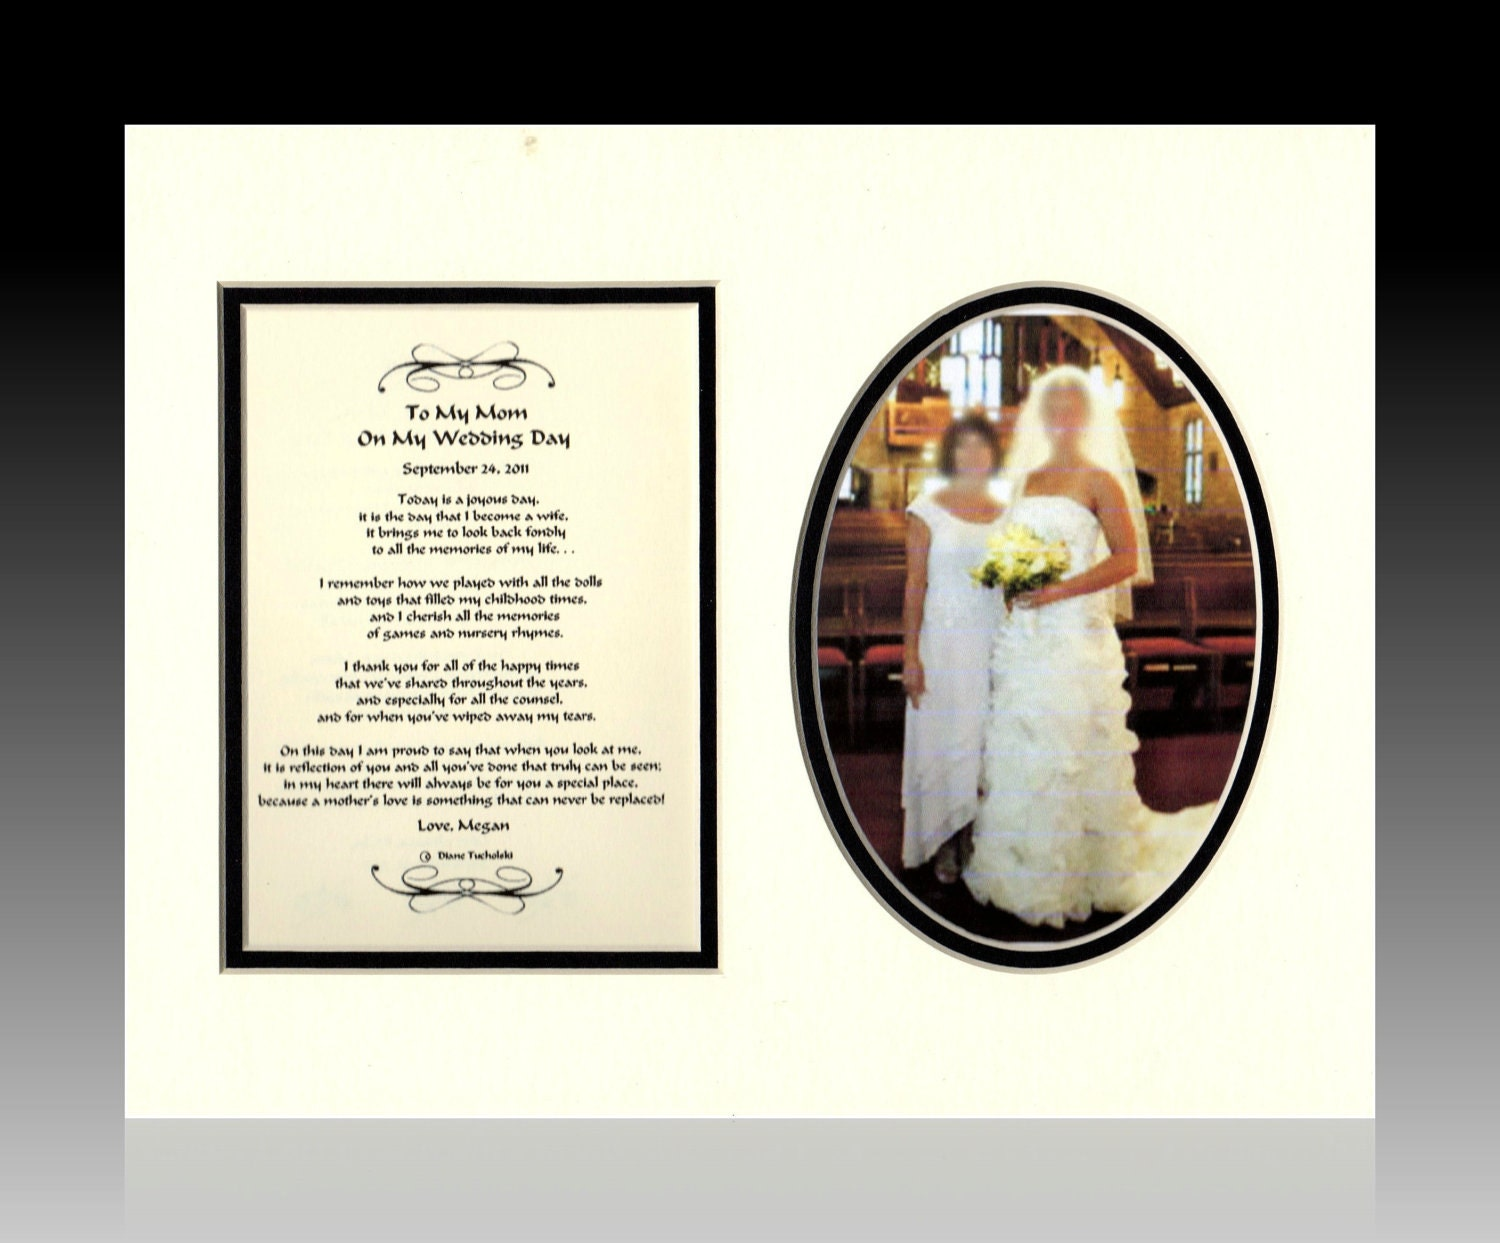 Unique Parent Wedding Gift Ideas: Wedding Mother Of The Bride Gift Personalized To My Mom On My